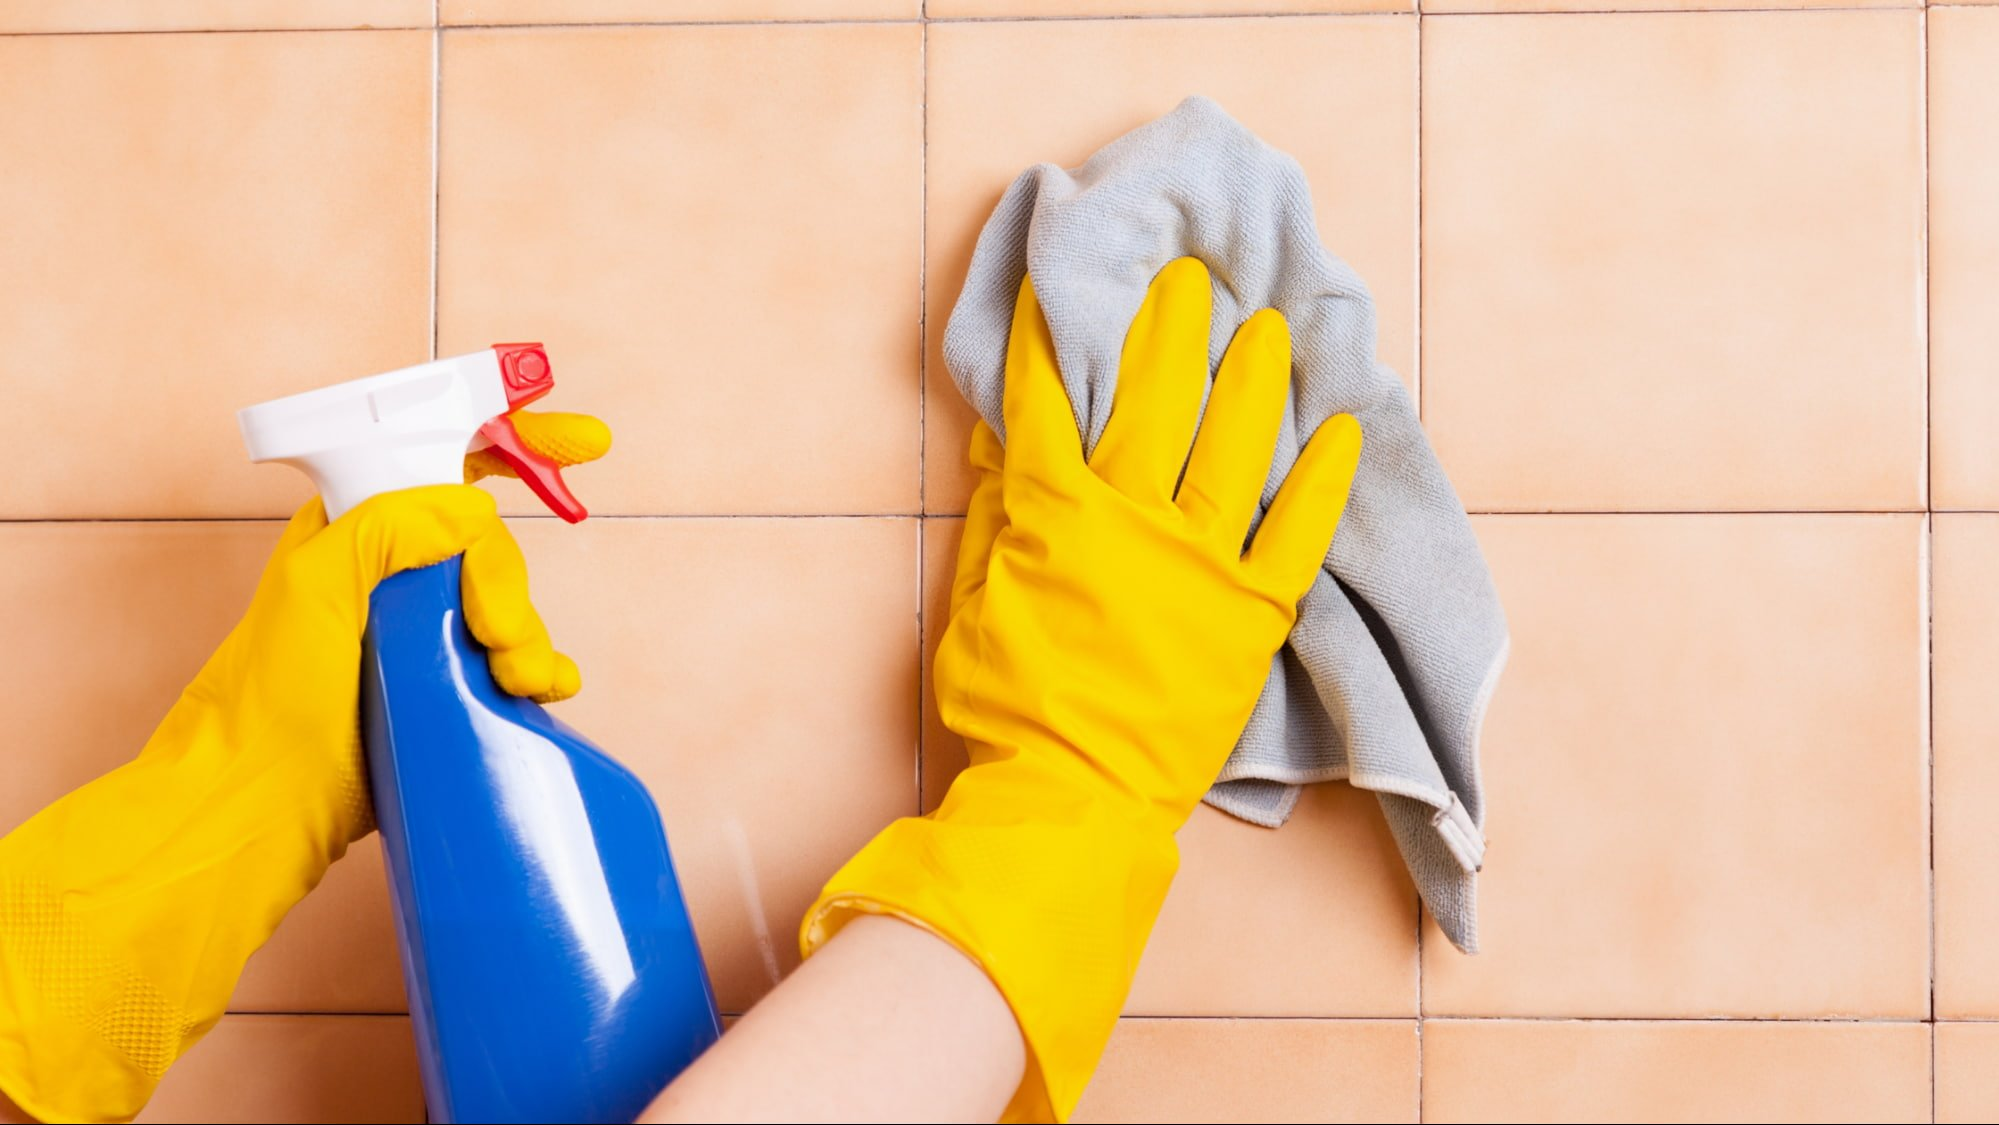 Easy Cleaning Tips For Ceramic and Porcelain Tiles